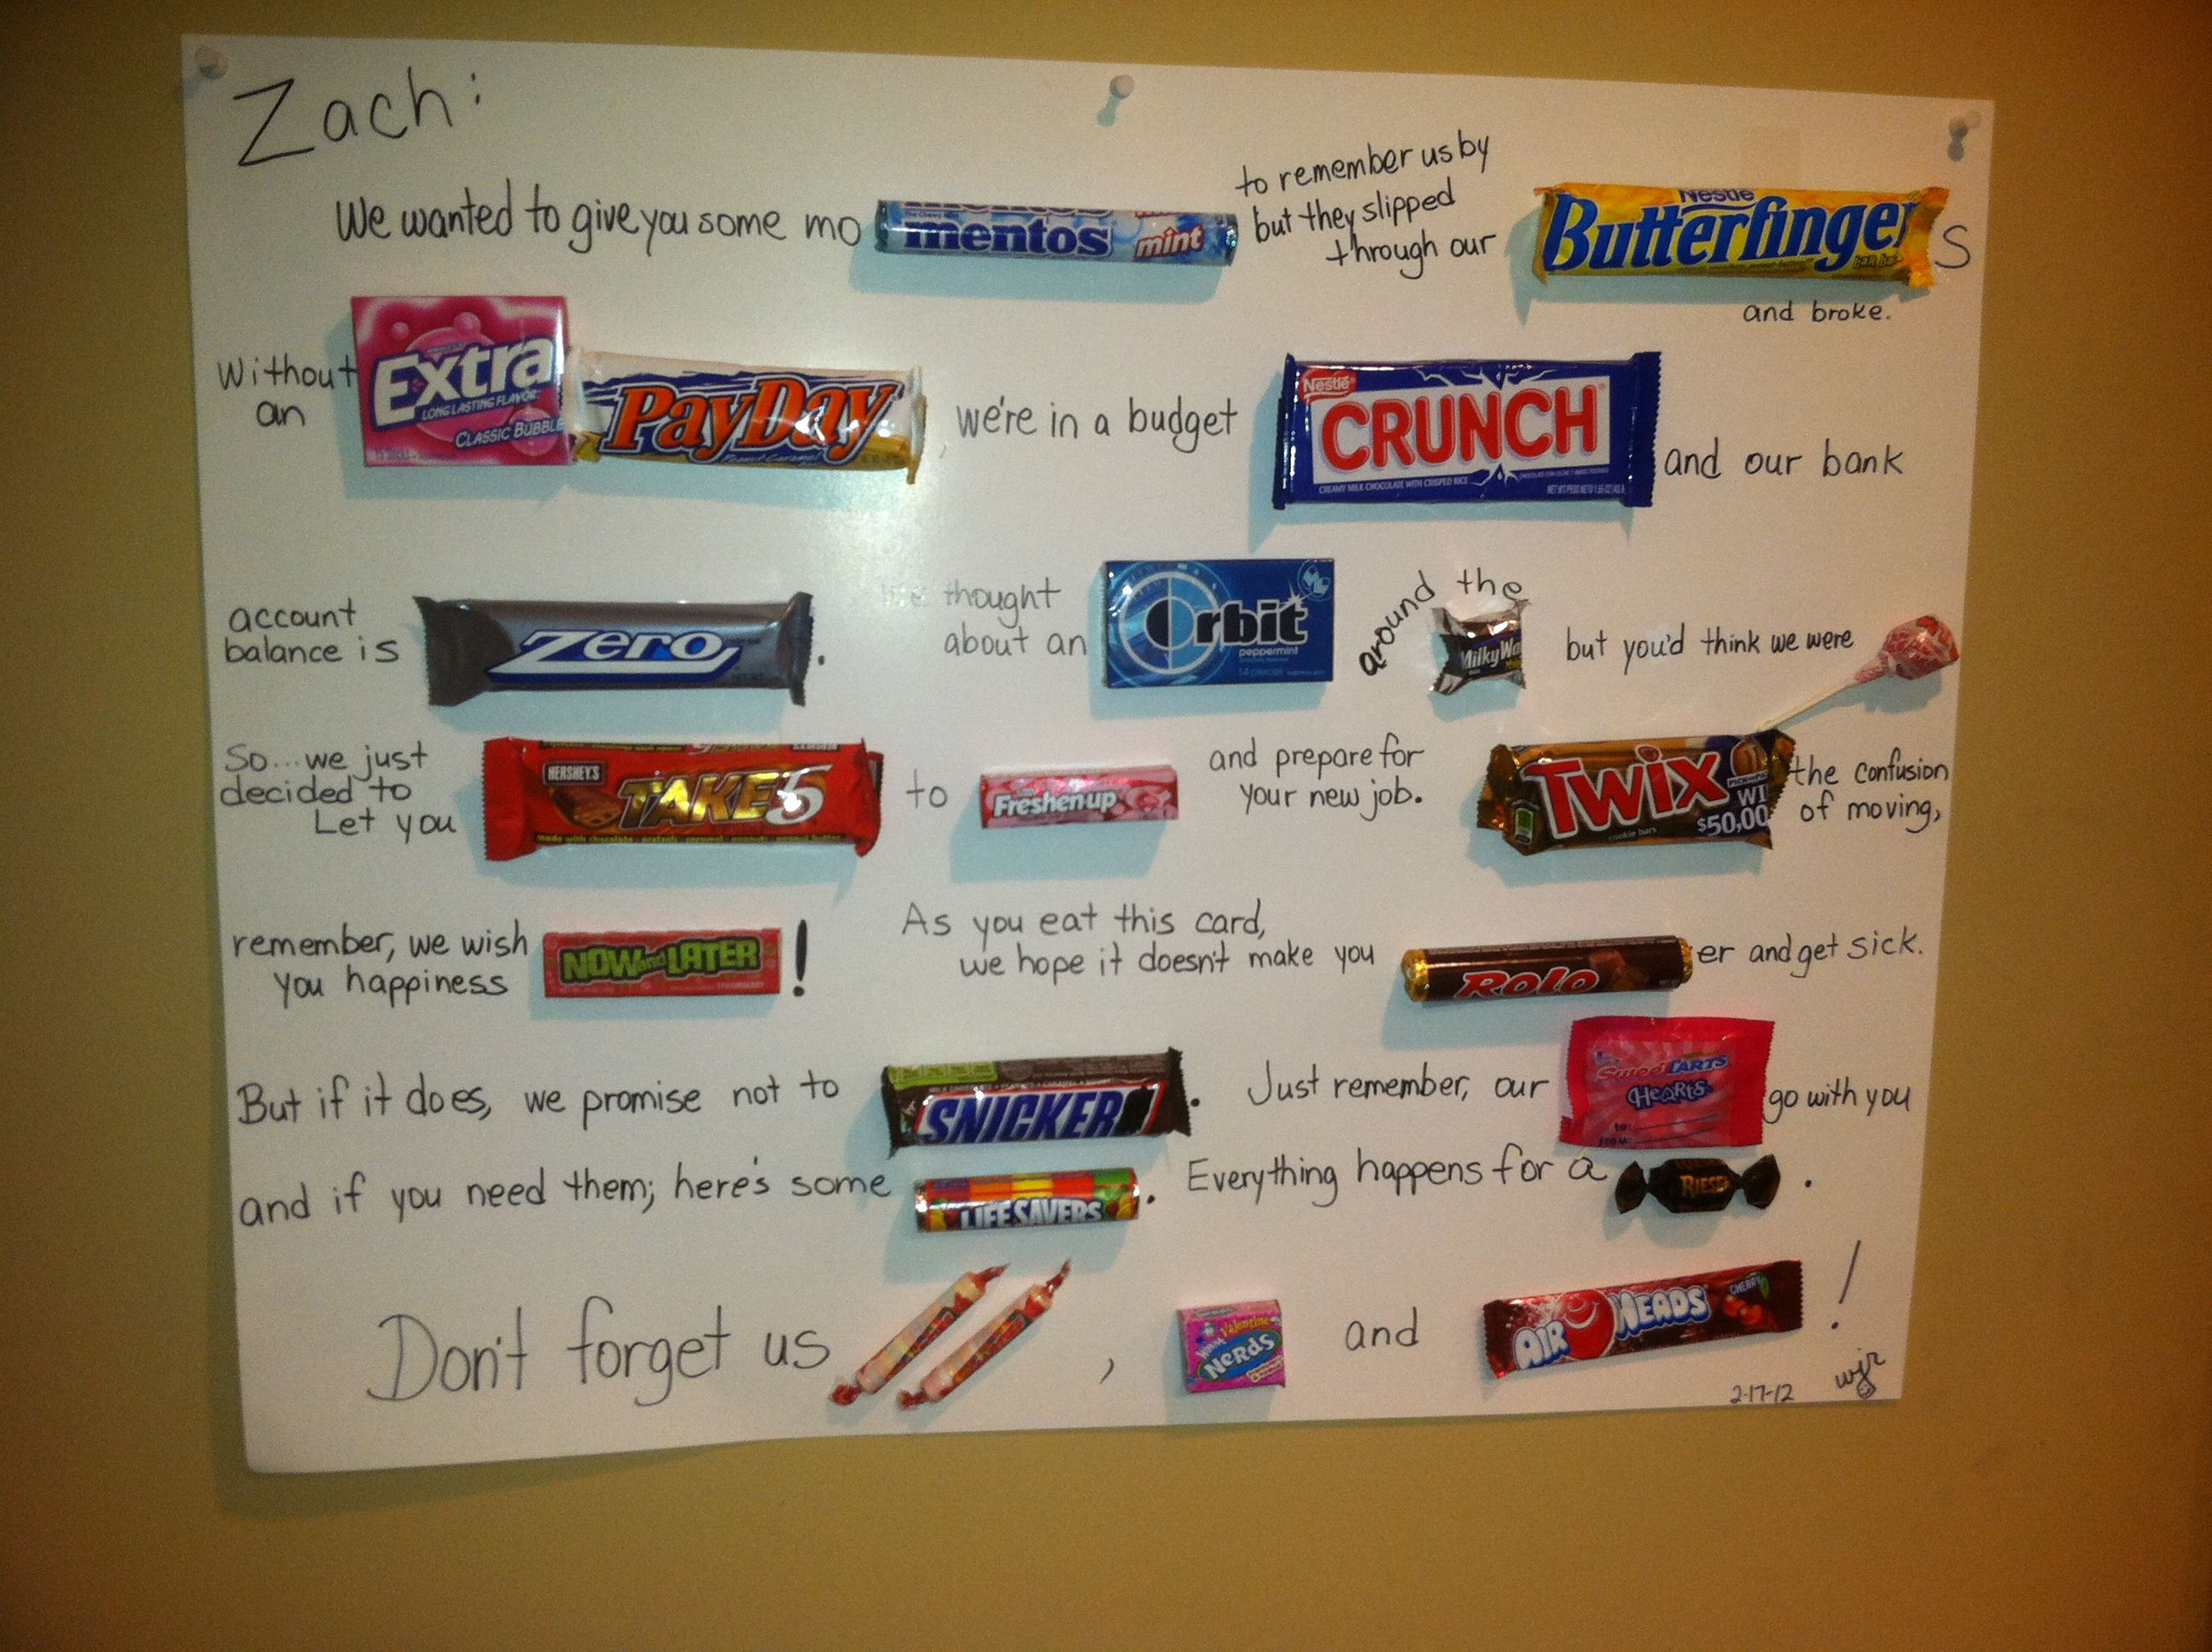 Going away card for co-worker (Zach) | Family | Moving ...